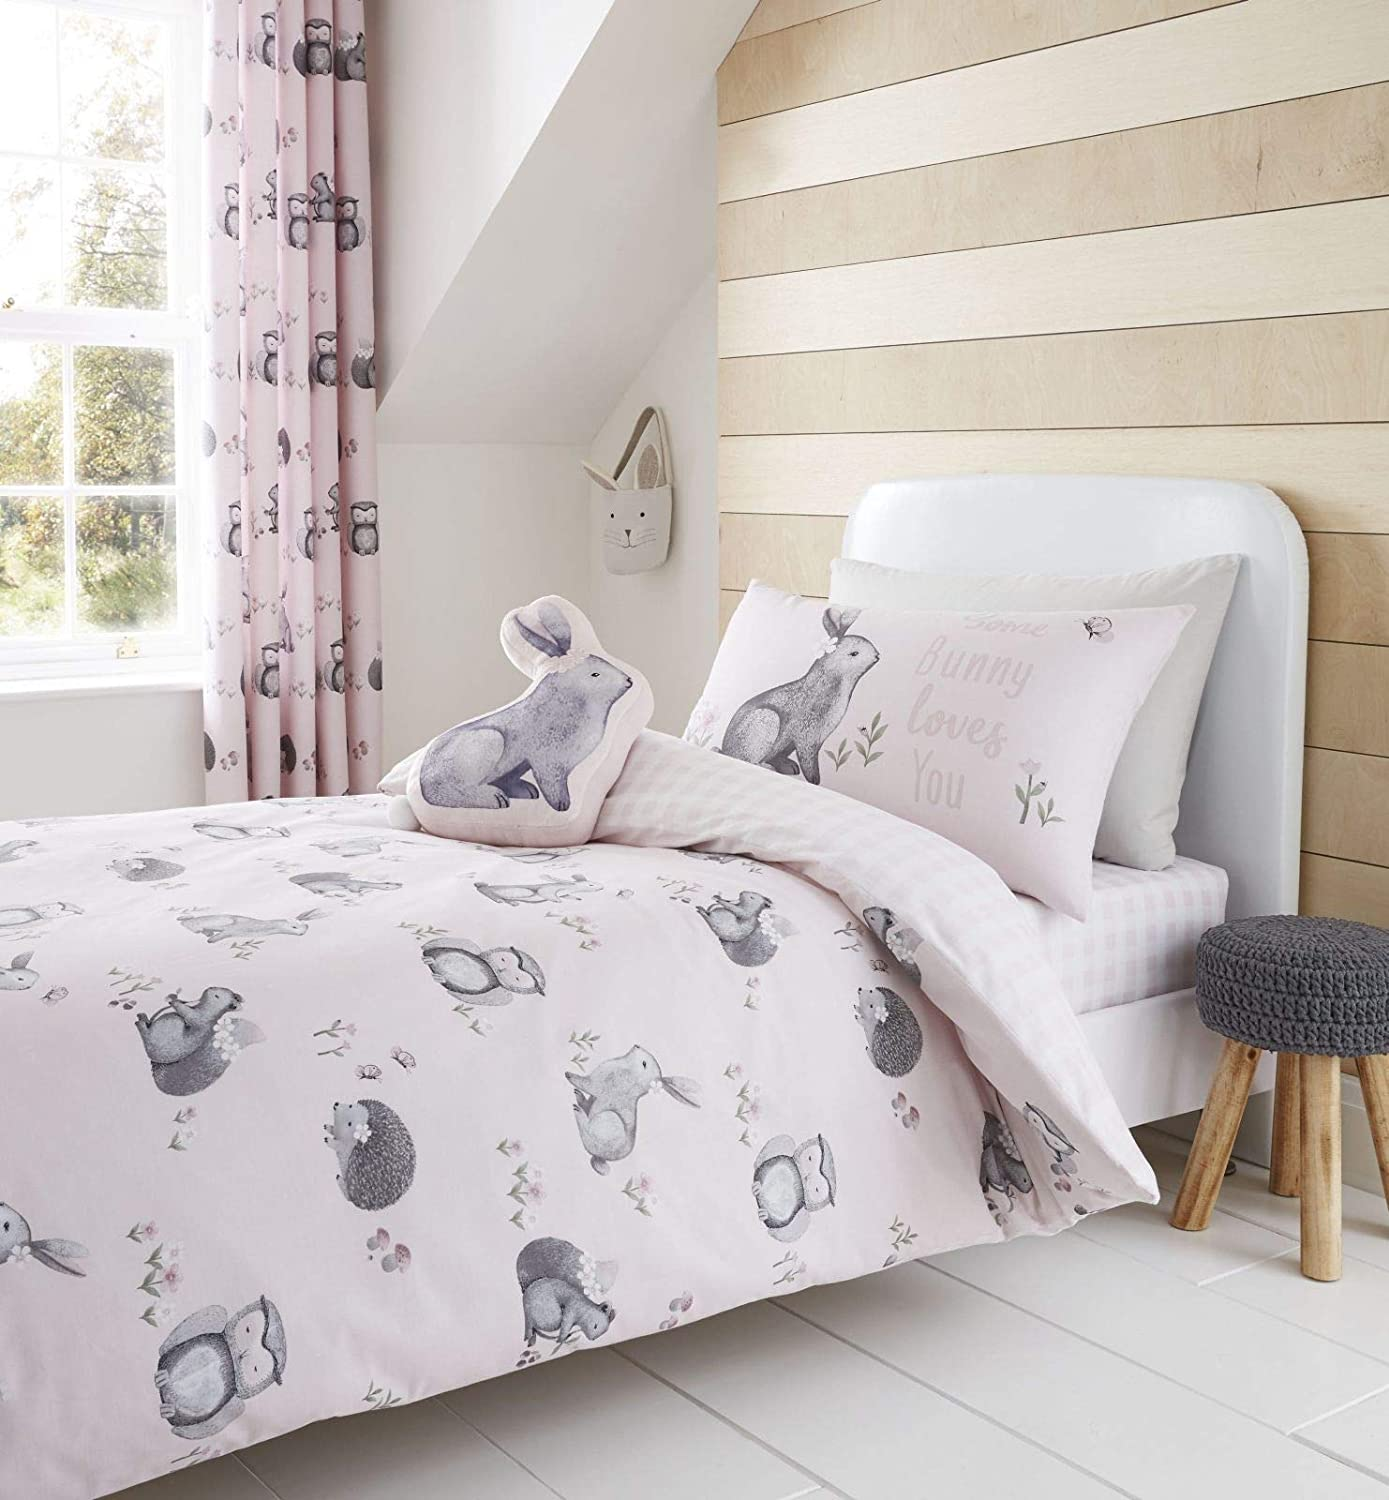 Catherine Lansfield Woodland Friends Easy Care Double Duvet Set Pink Turner Bianca BD/49204/W/DQS/PK